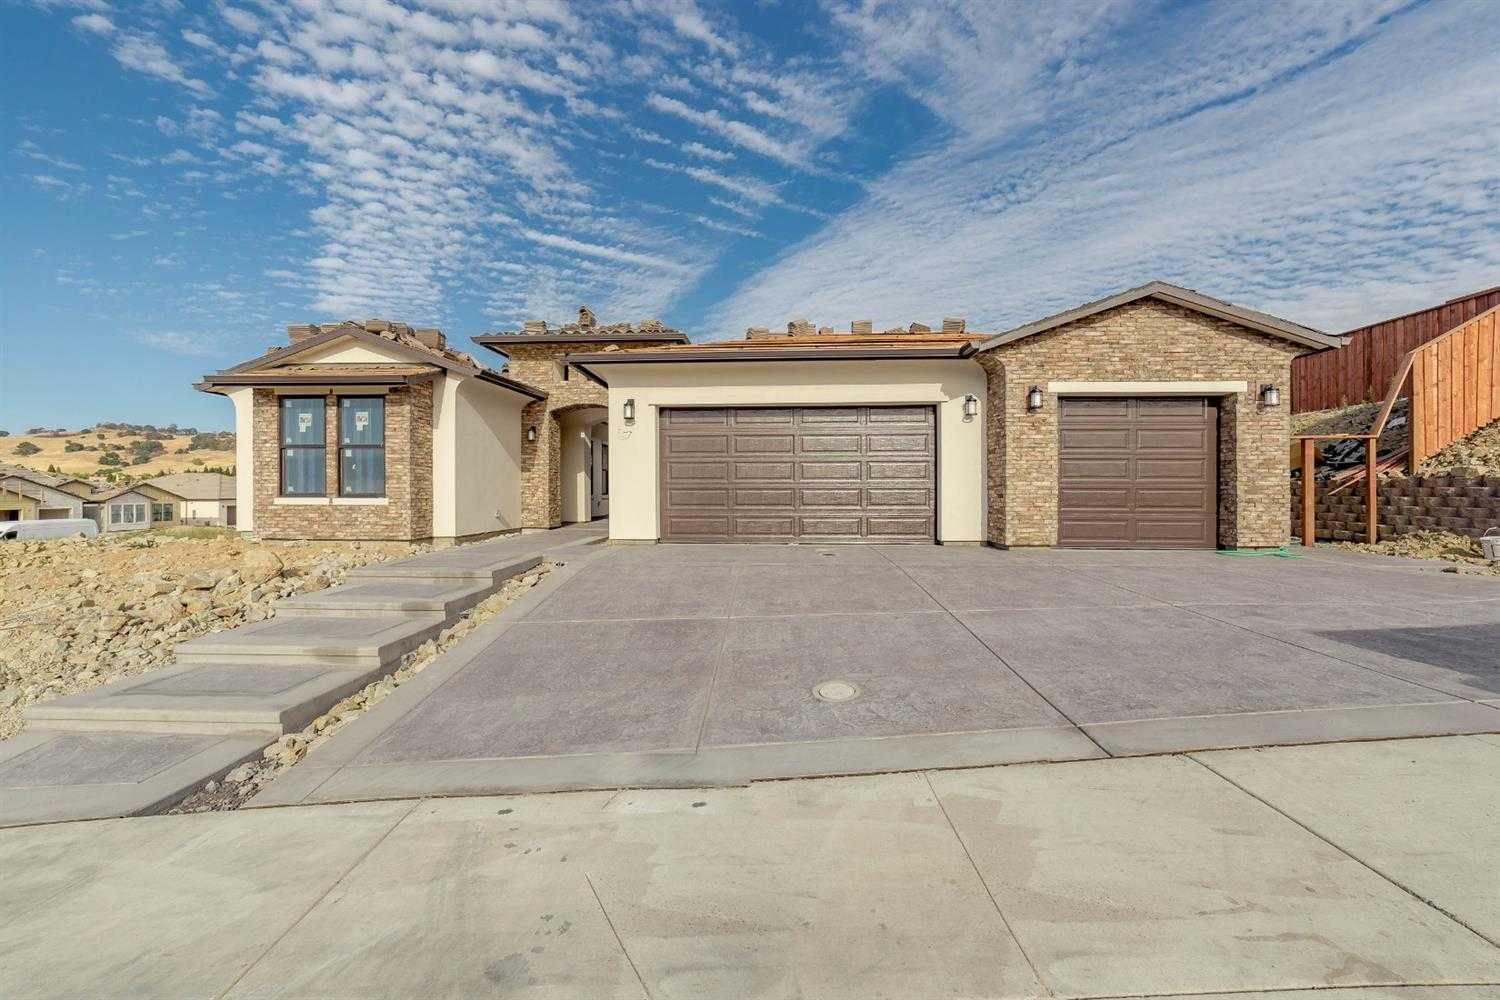 $929,900 - 4Br/4Ba -  for Sale in Folsom